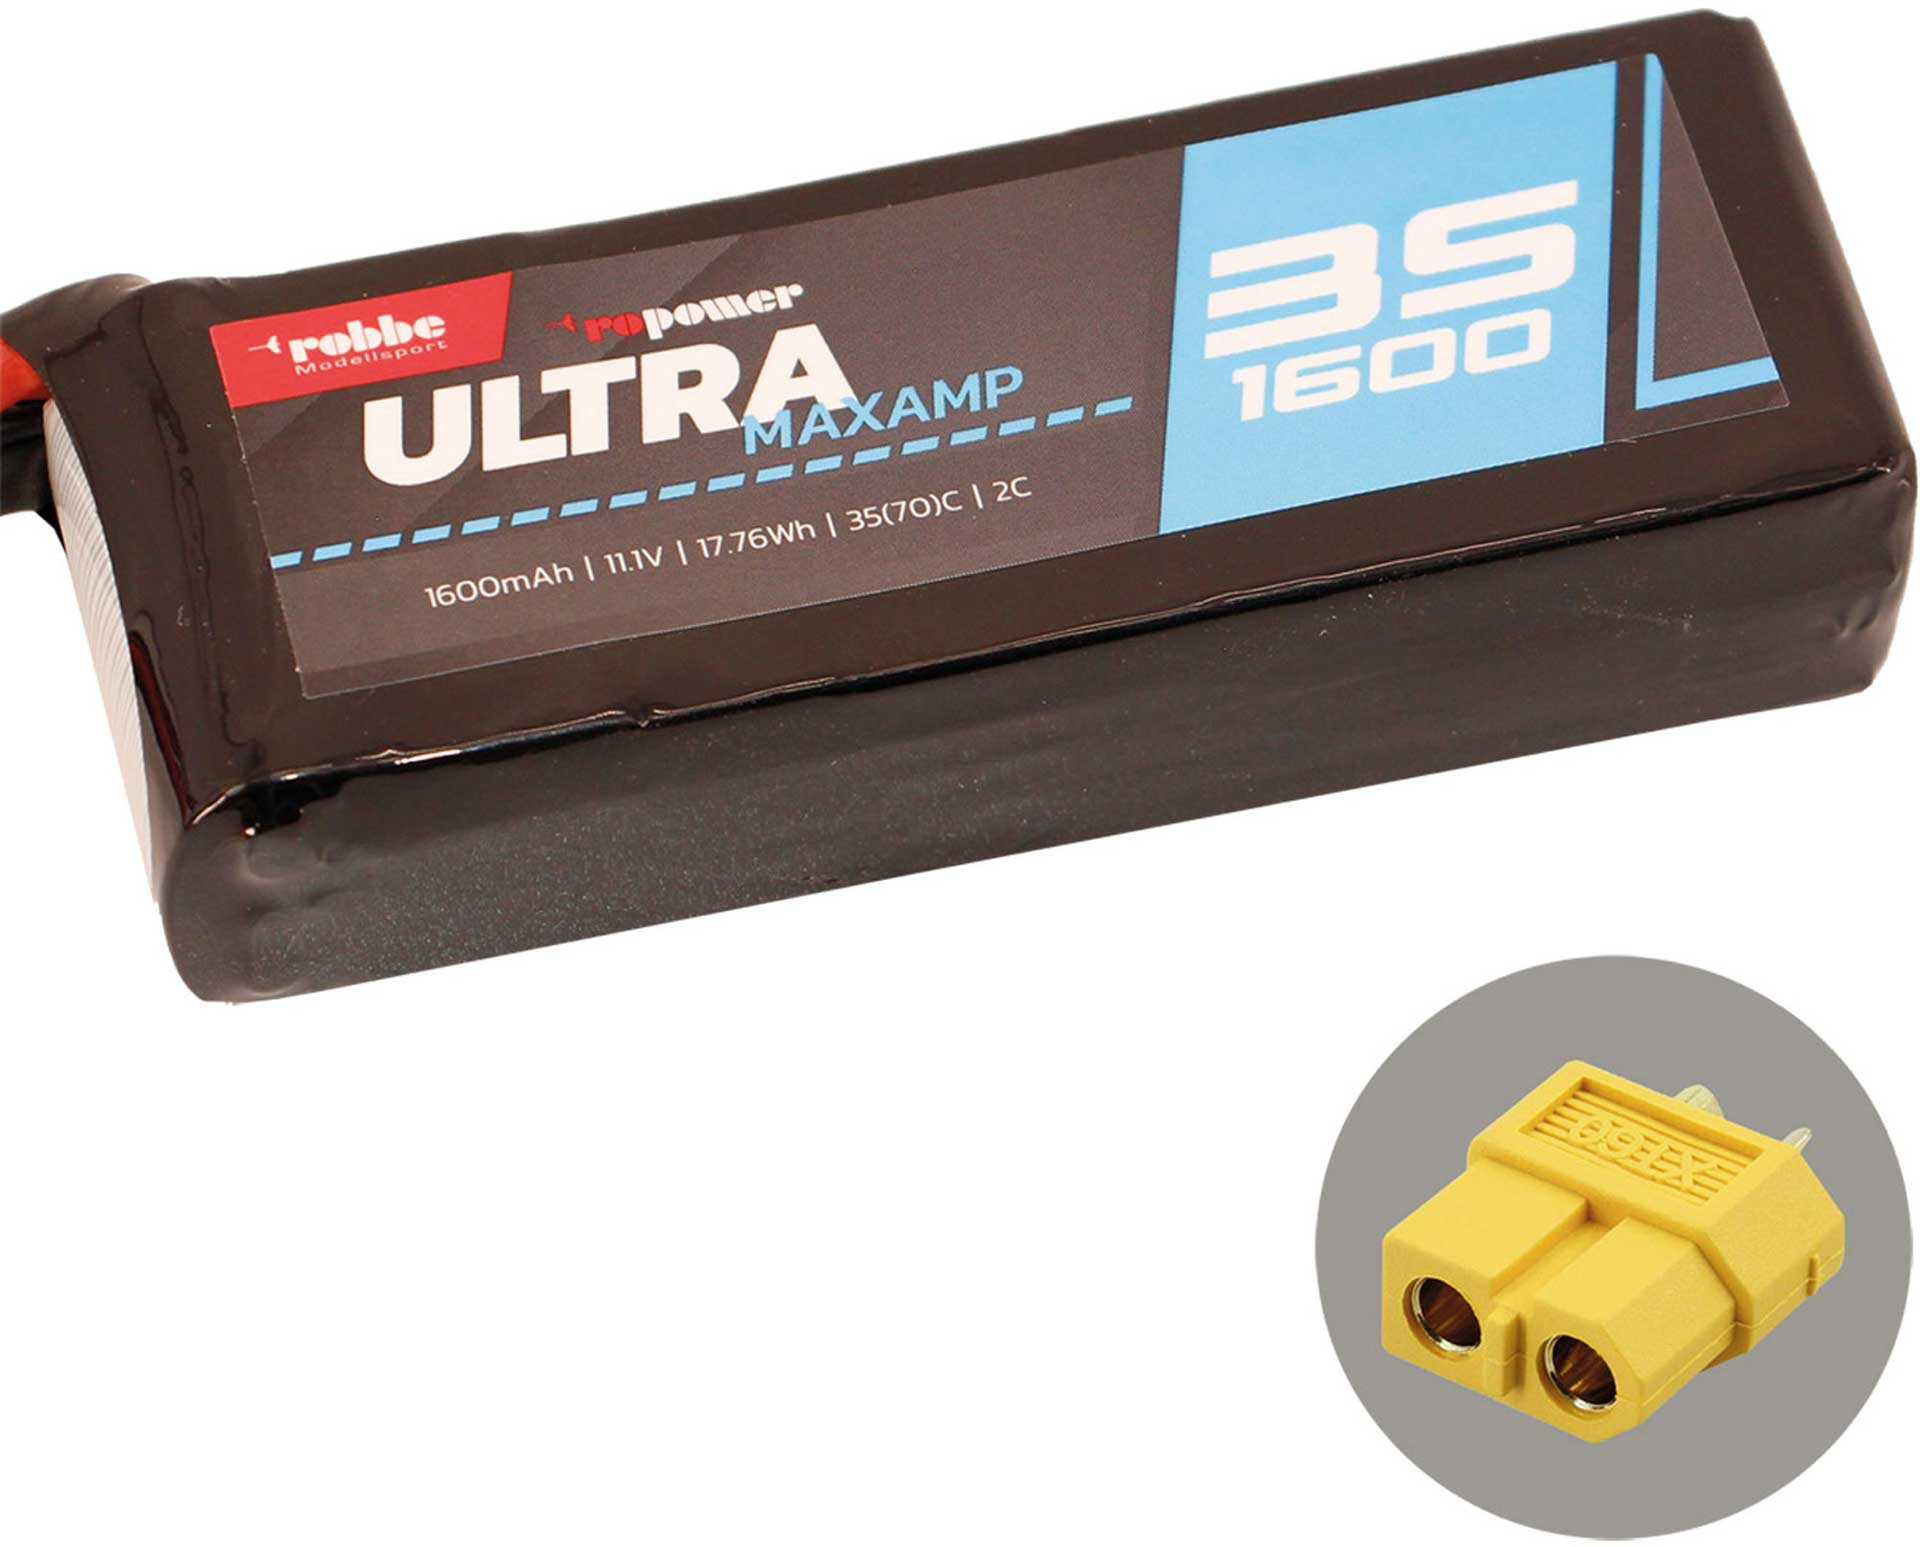 ROBBE RO-POWER ULTRA MAXAMP 1600MAH 11,1 VOLT